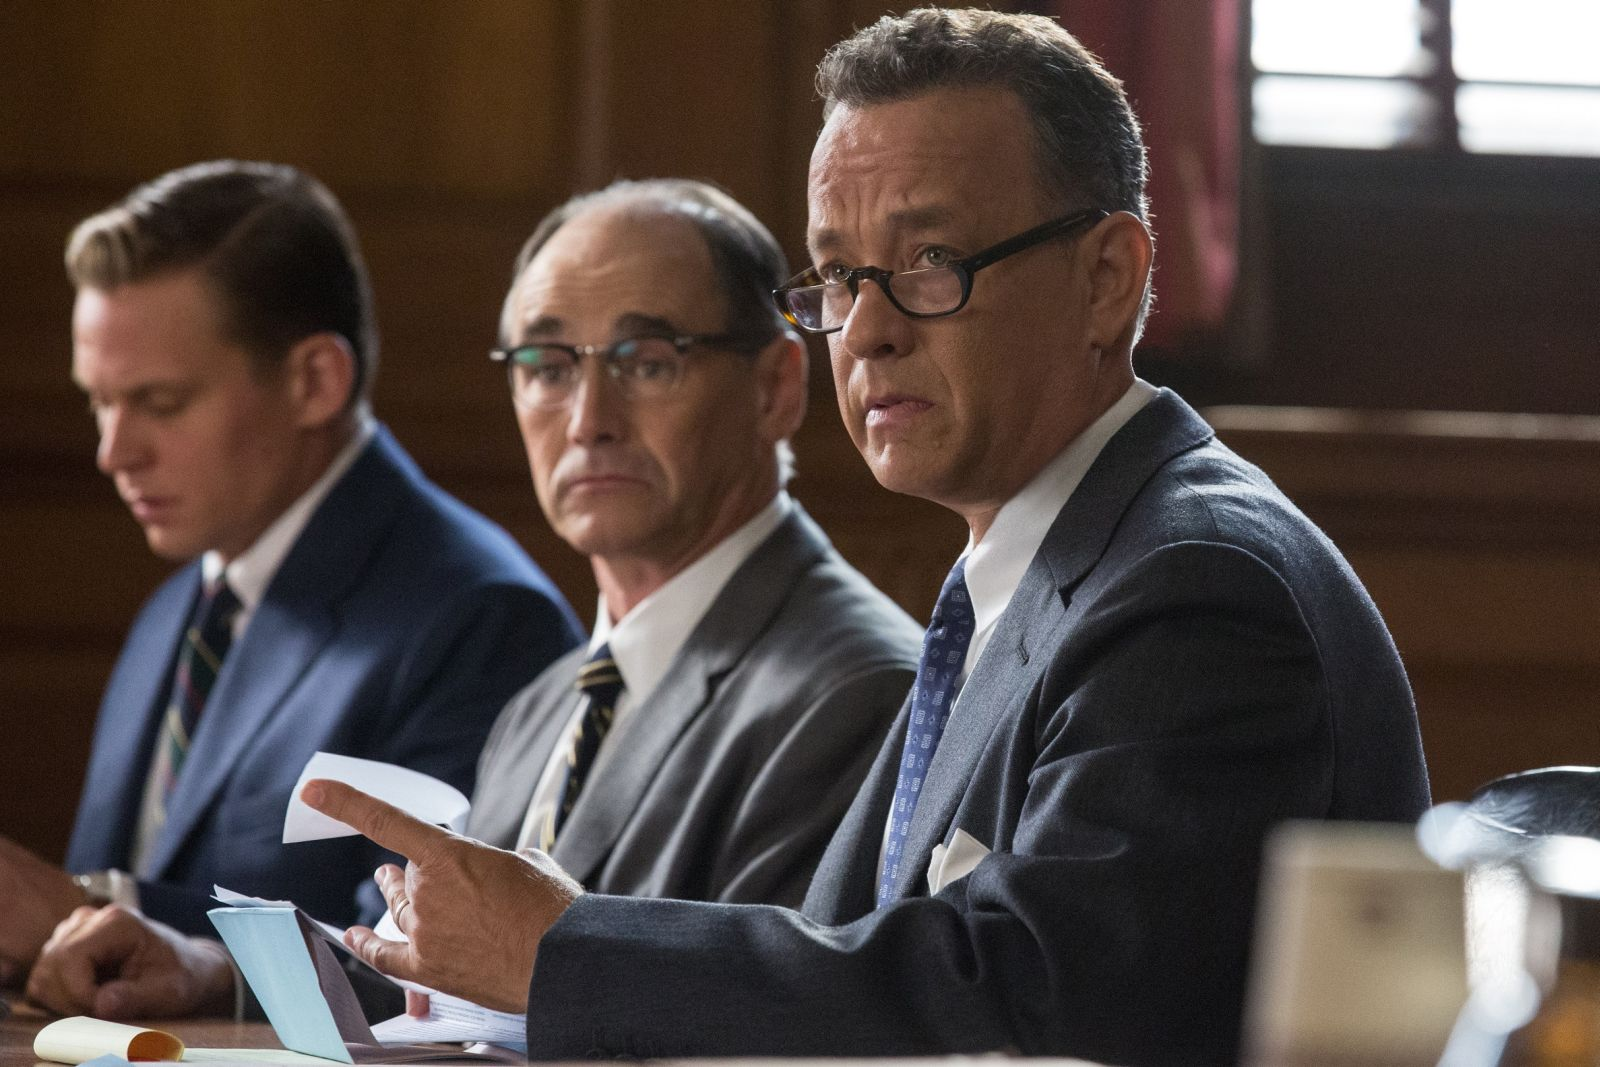 Il ponte delle spie: Tom Hanks e Mark Rylance in una scena del film